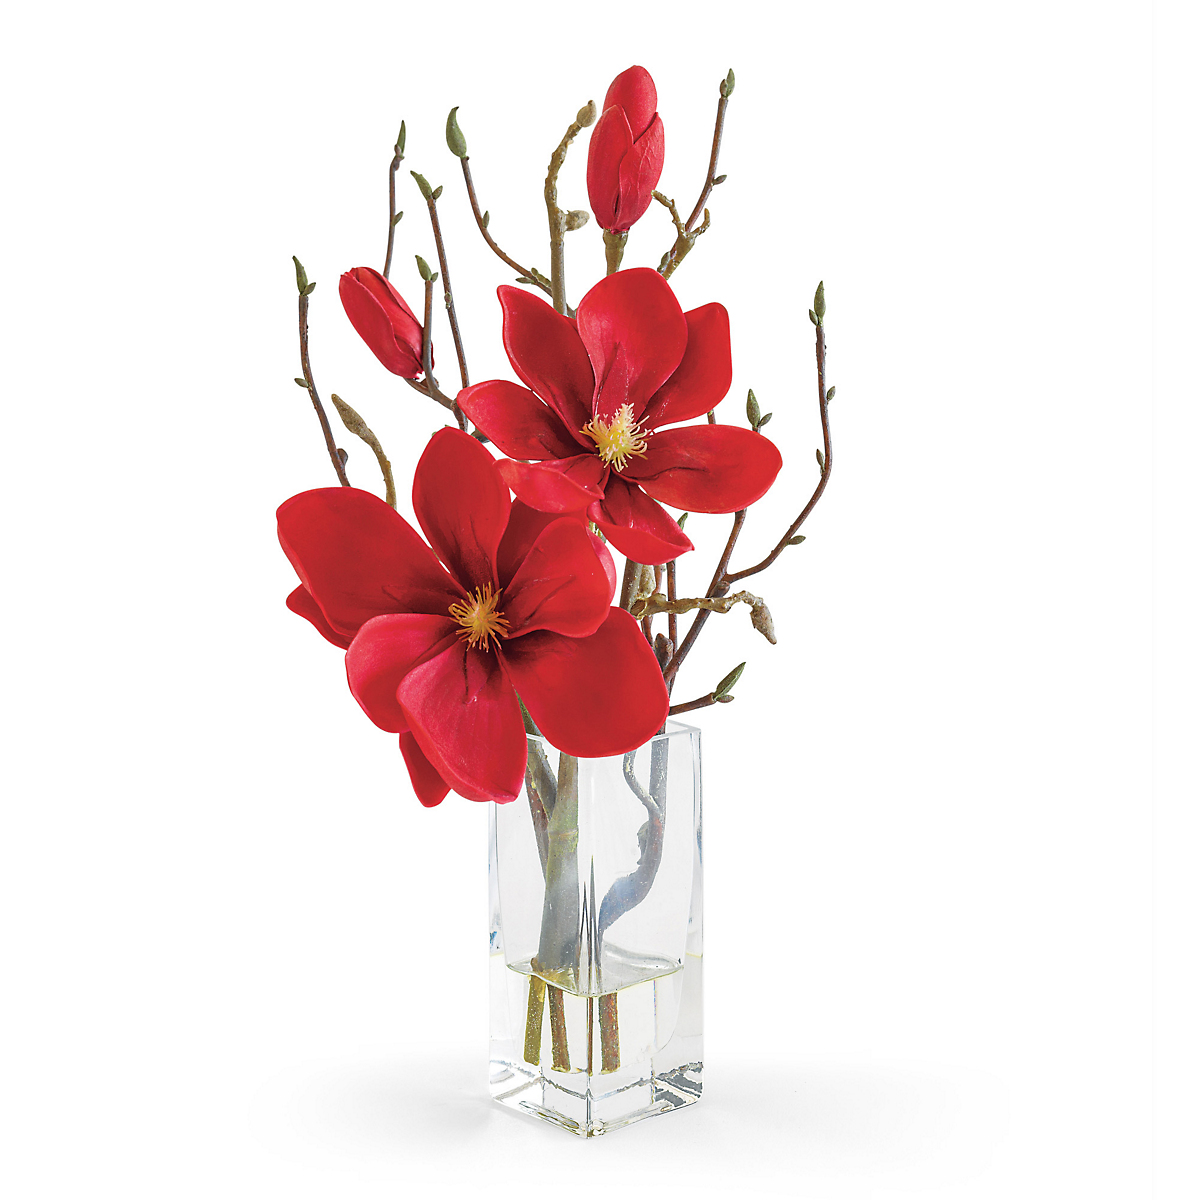 Red Magnolia Branch In Vase